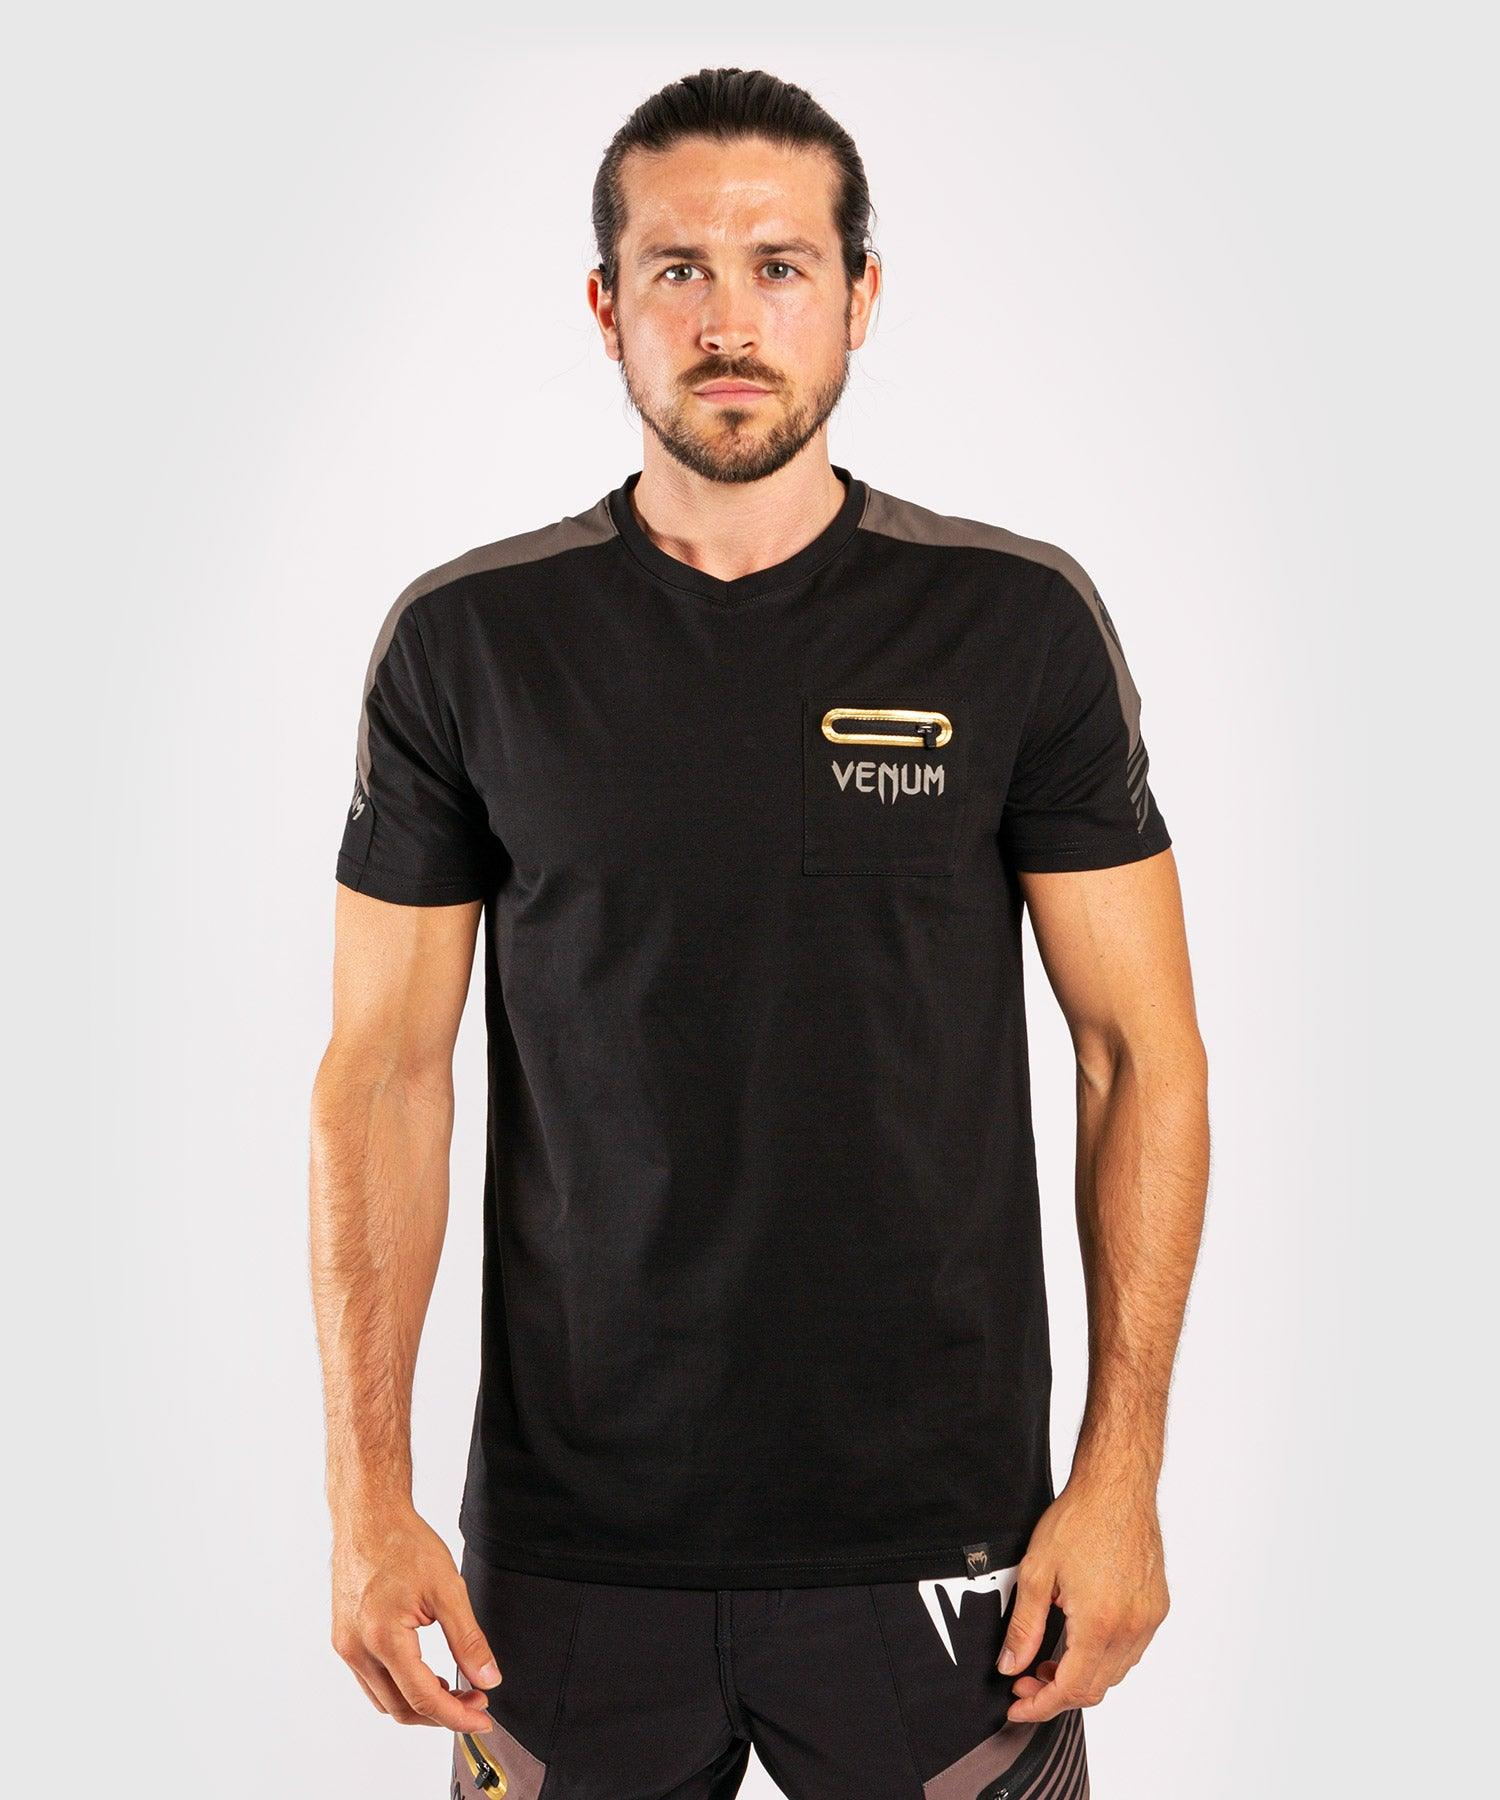 Venum Cargo T-shirt - Black/Grey picture 1